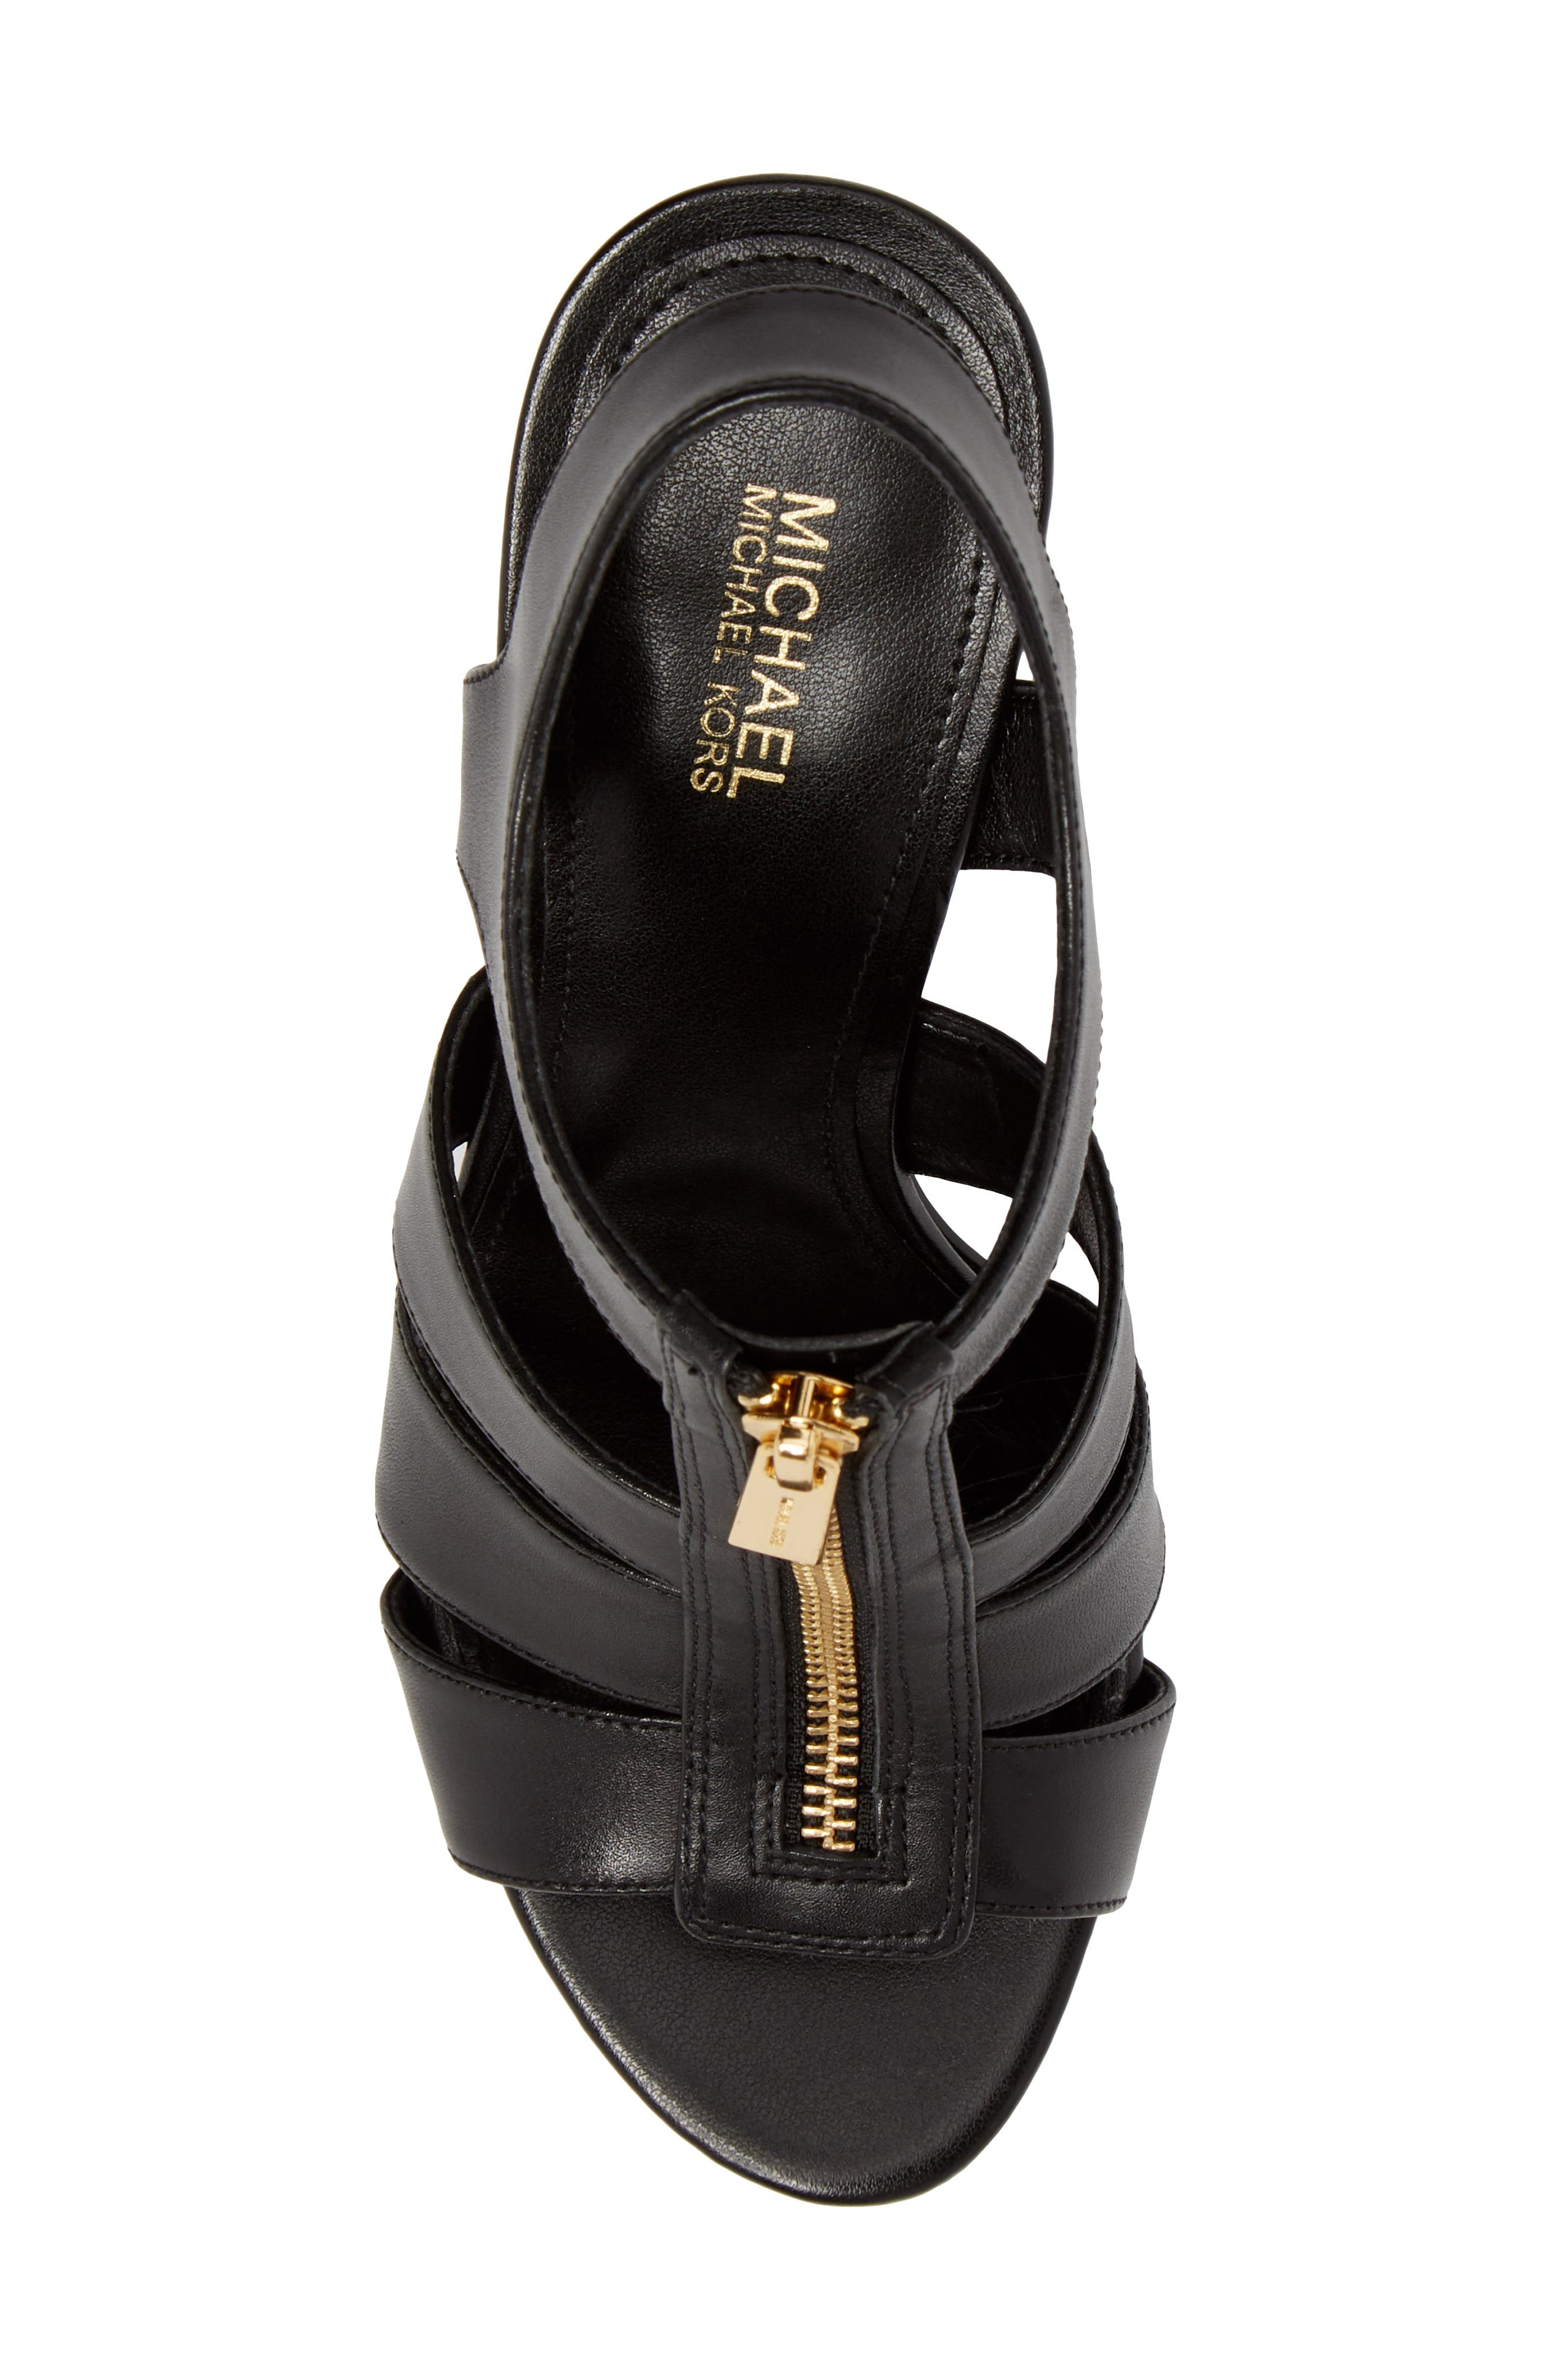 Damita Sandal,                             Alternate thumbnail 5, color,                             Black